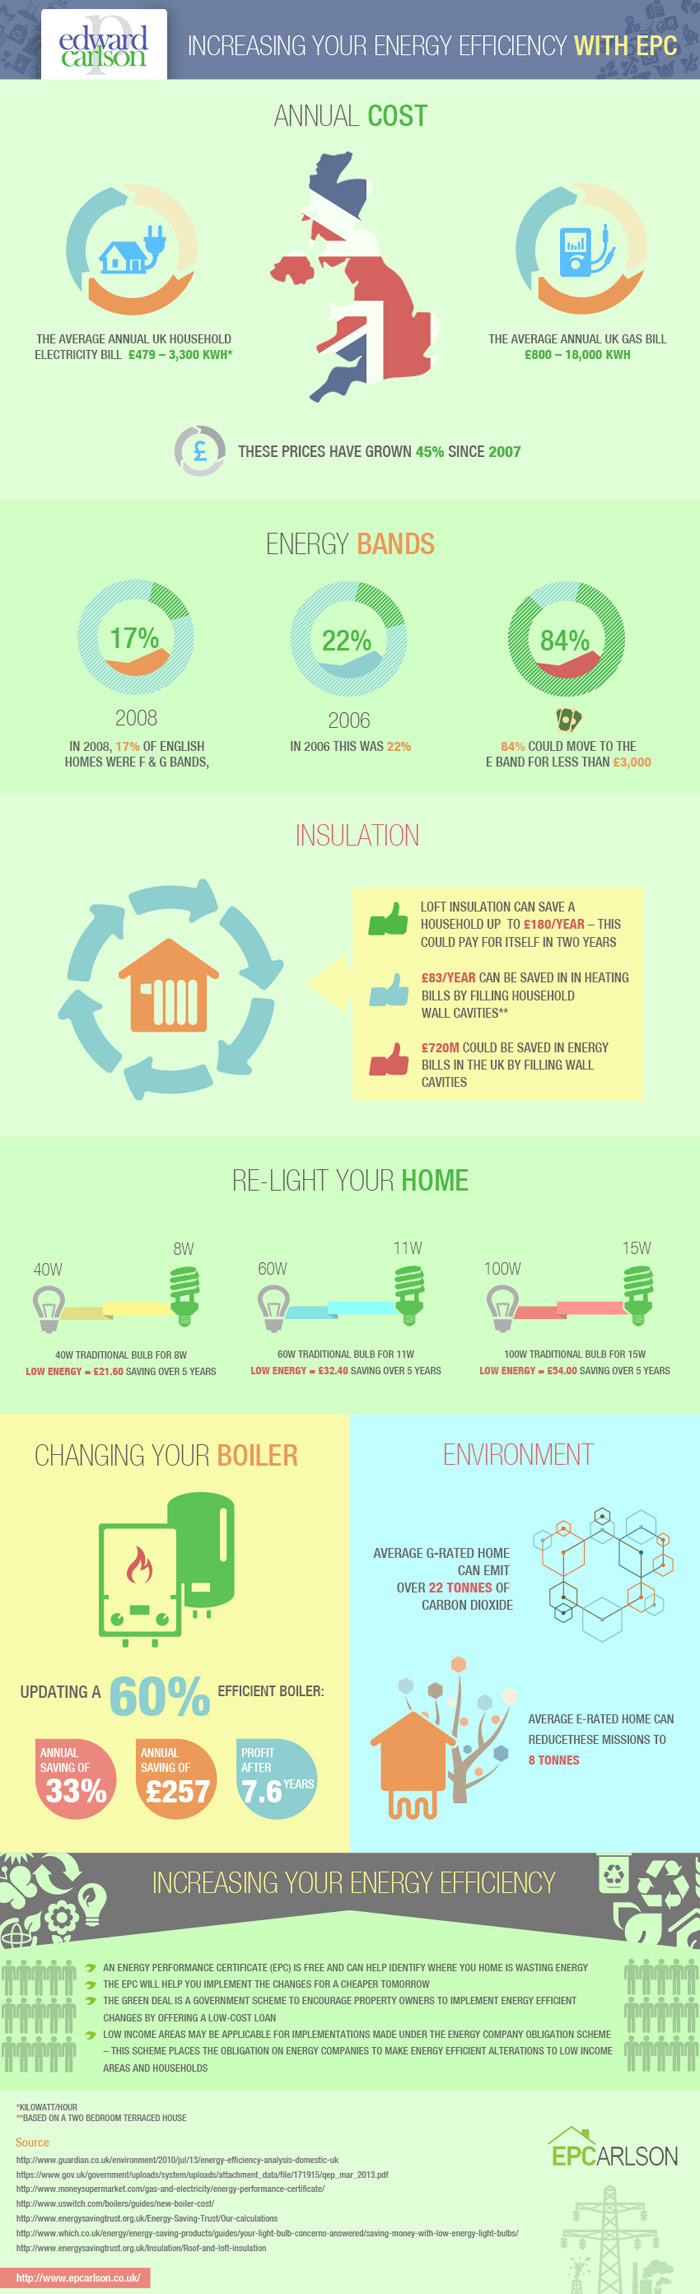 Savings to be made with Energy Efficient Installations | Visit our new infographic gallery at visualoop.com/